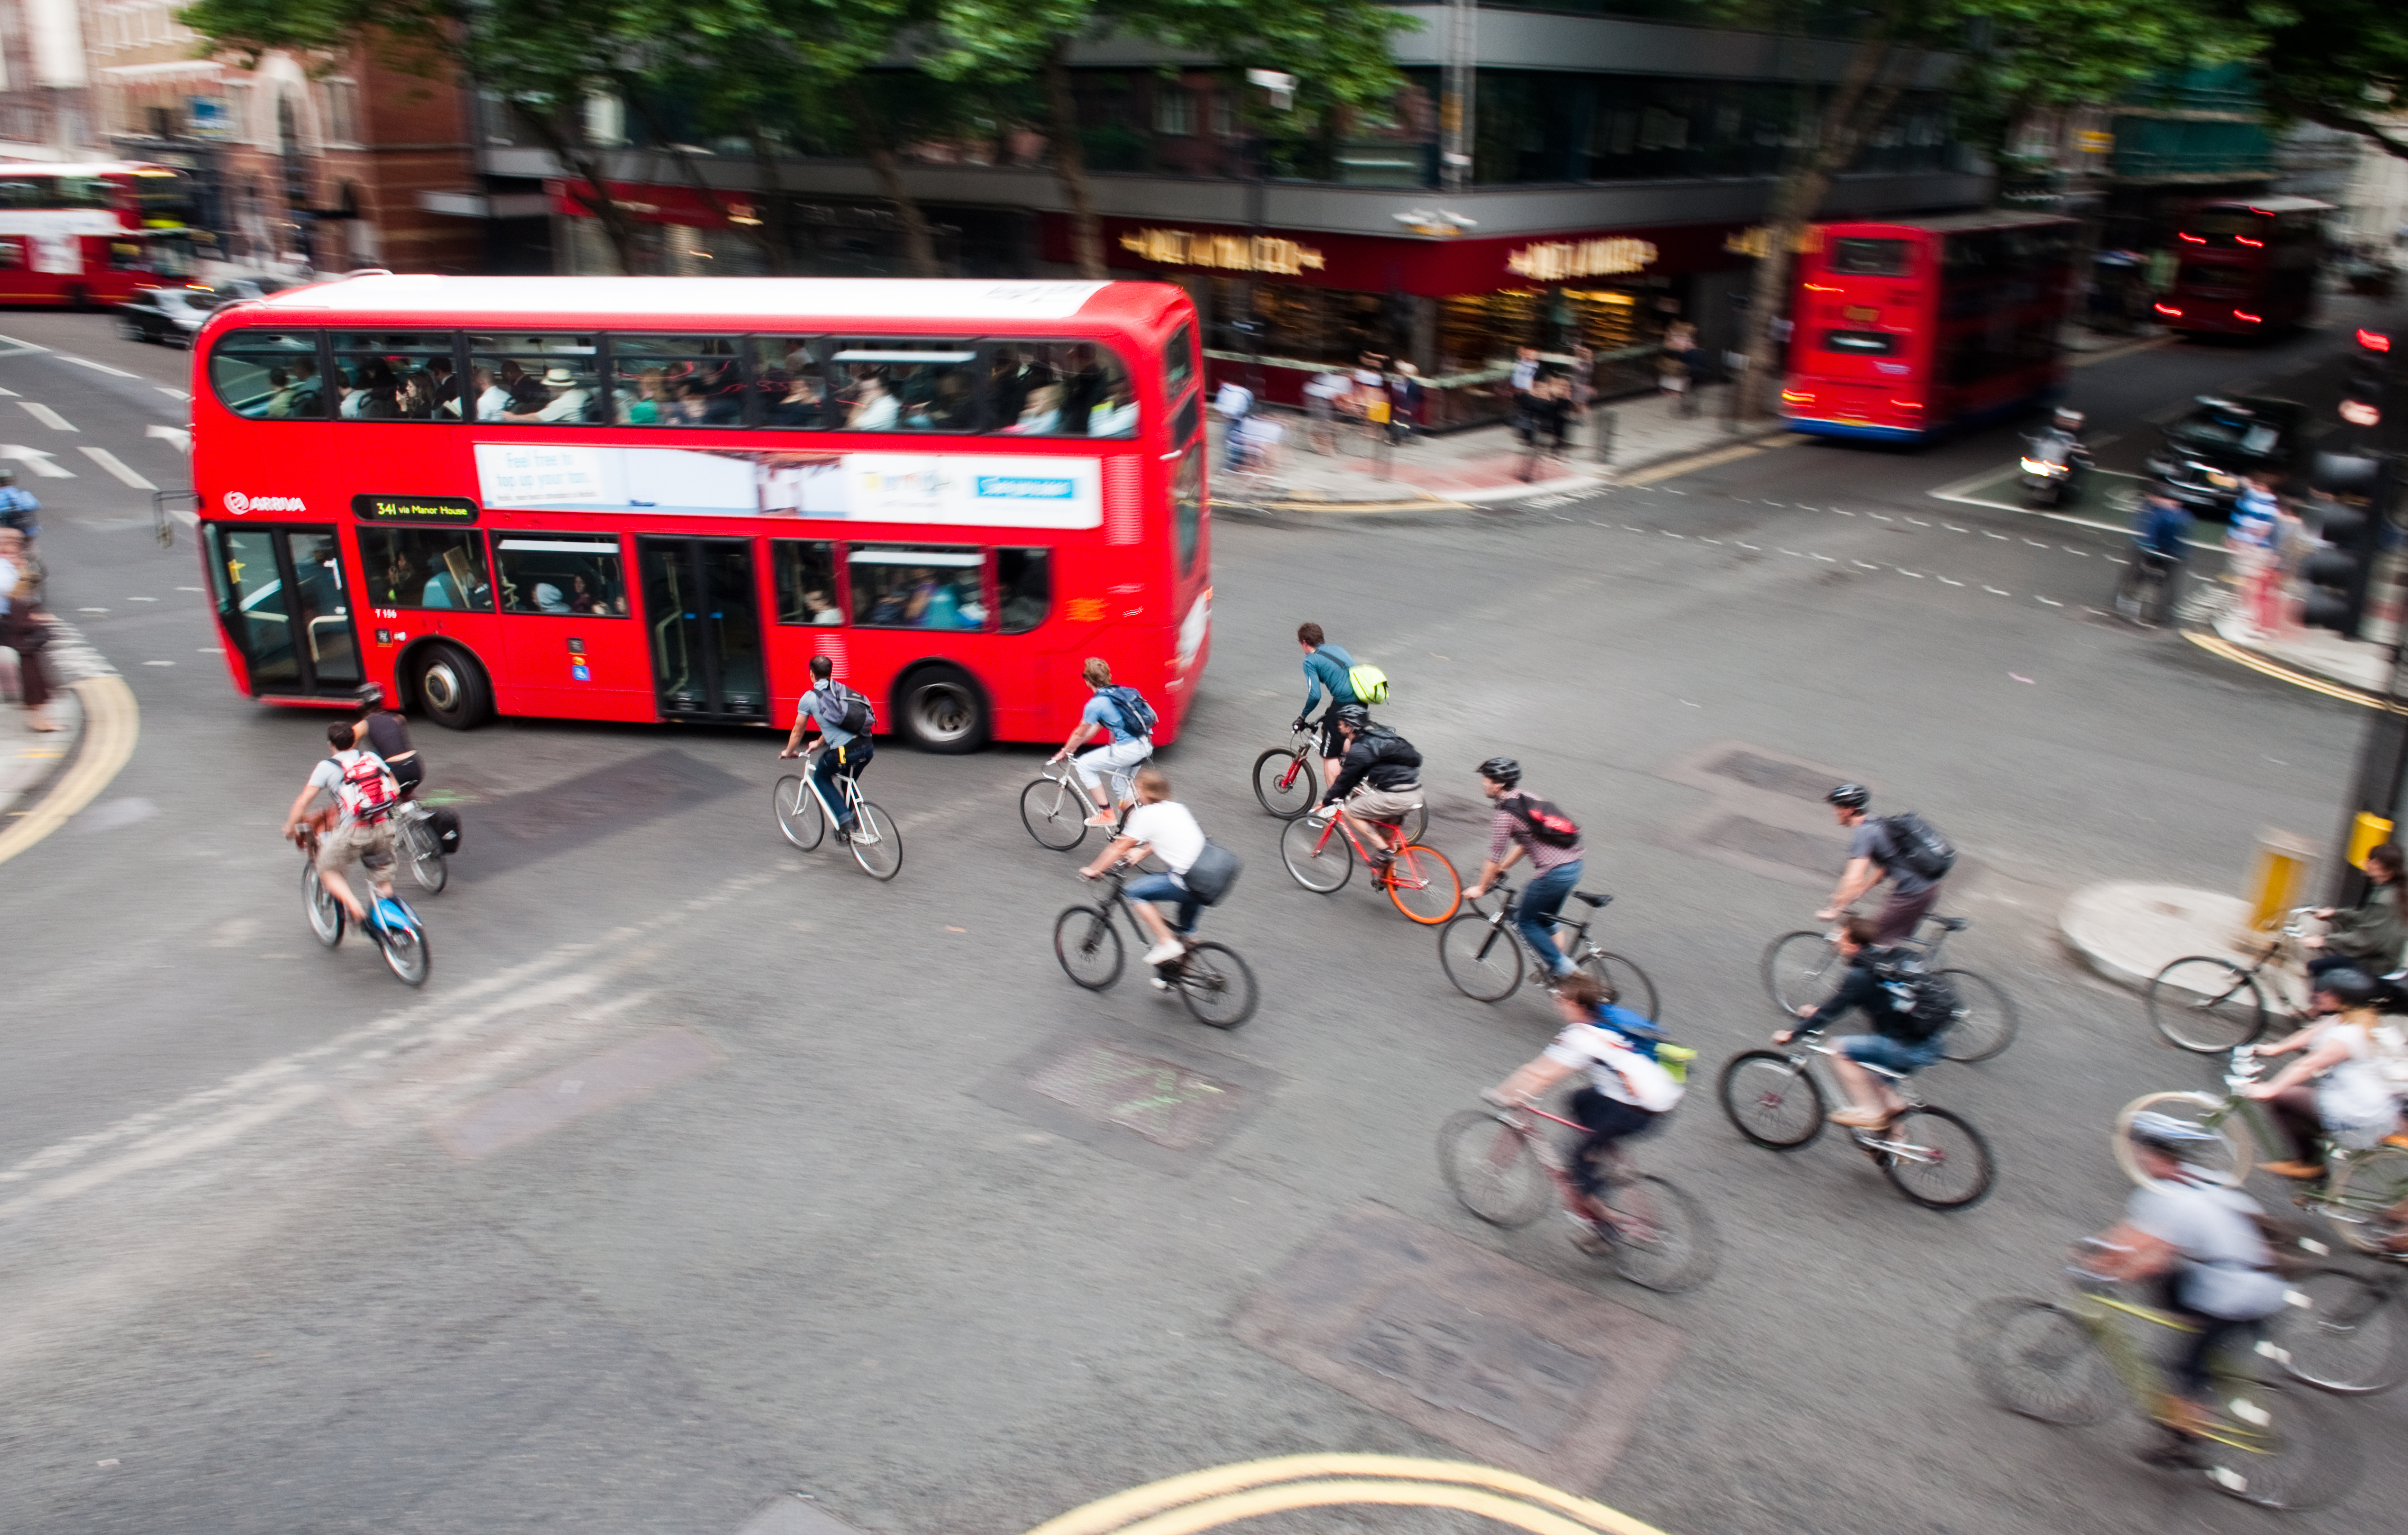 London, England - July 5, 2011: Commuter cyclists set off from a green light at a busy road junction...